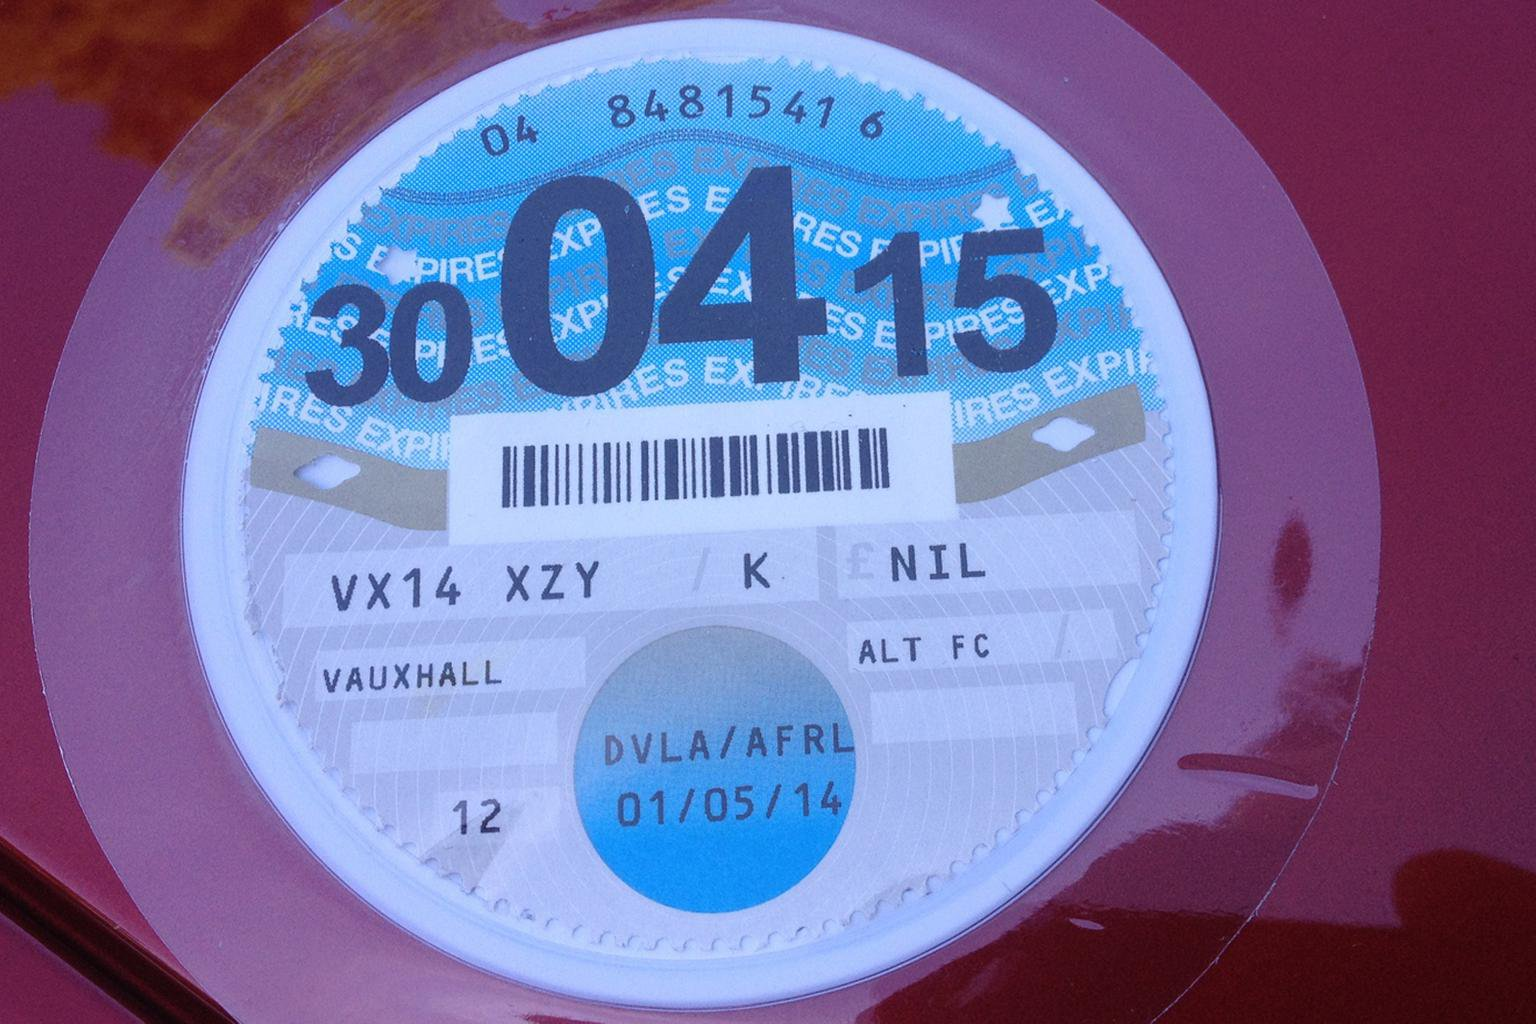 Road tax rates for 2014-2015